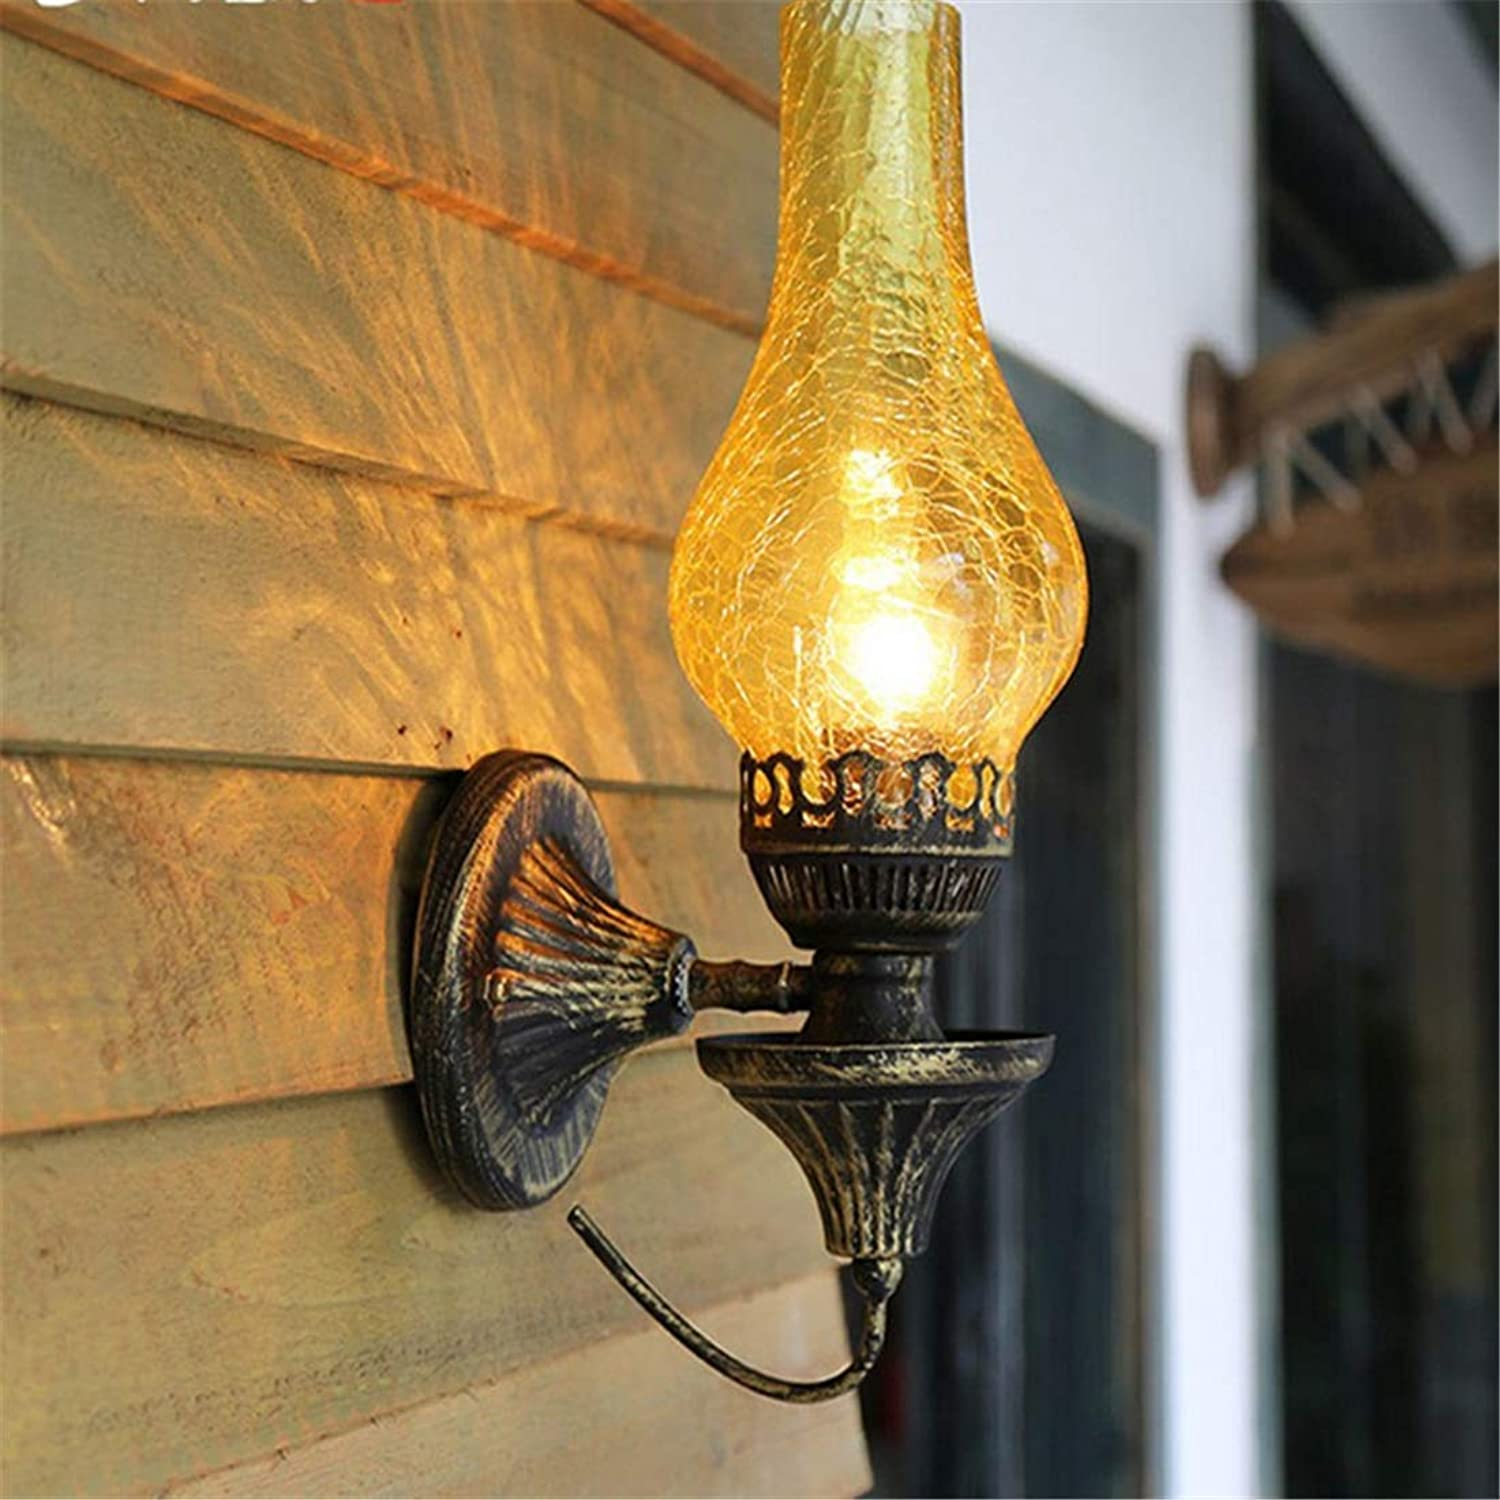 Lichtwall Sconce Wall Lights Living Room American Rustic Bedroom Bedside Lamp Wall Lamp Nordic Living Room Wall Lamps Iron Wall Lights [Energy Class A++]